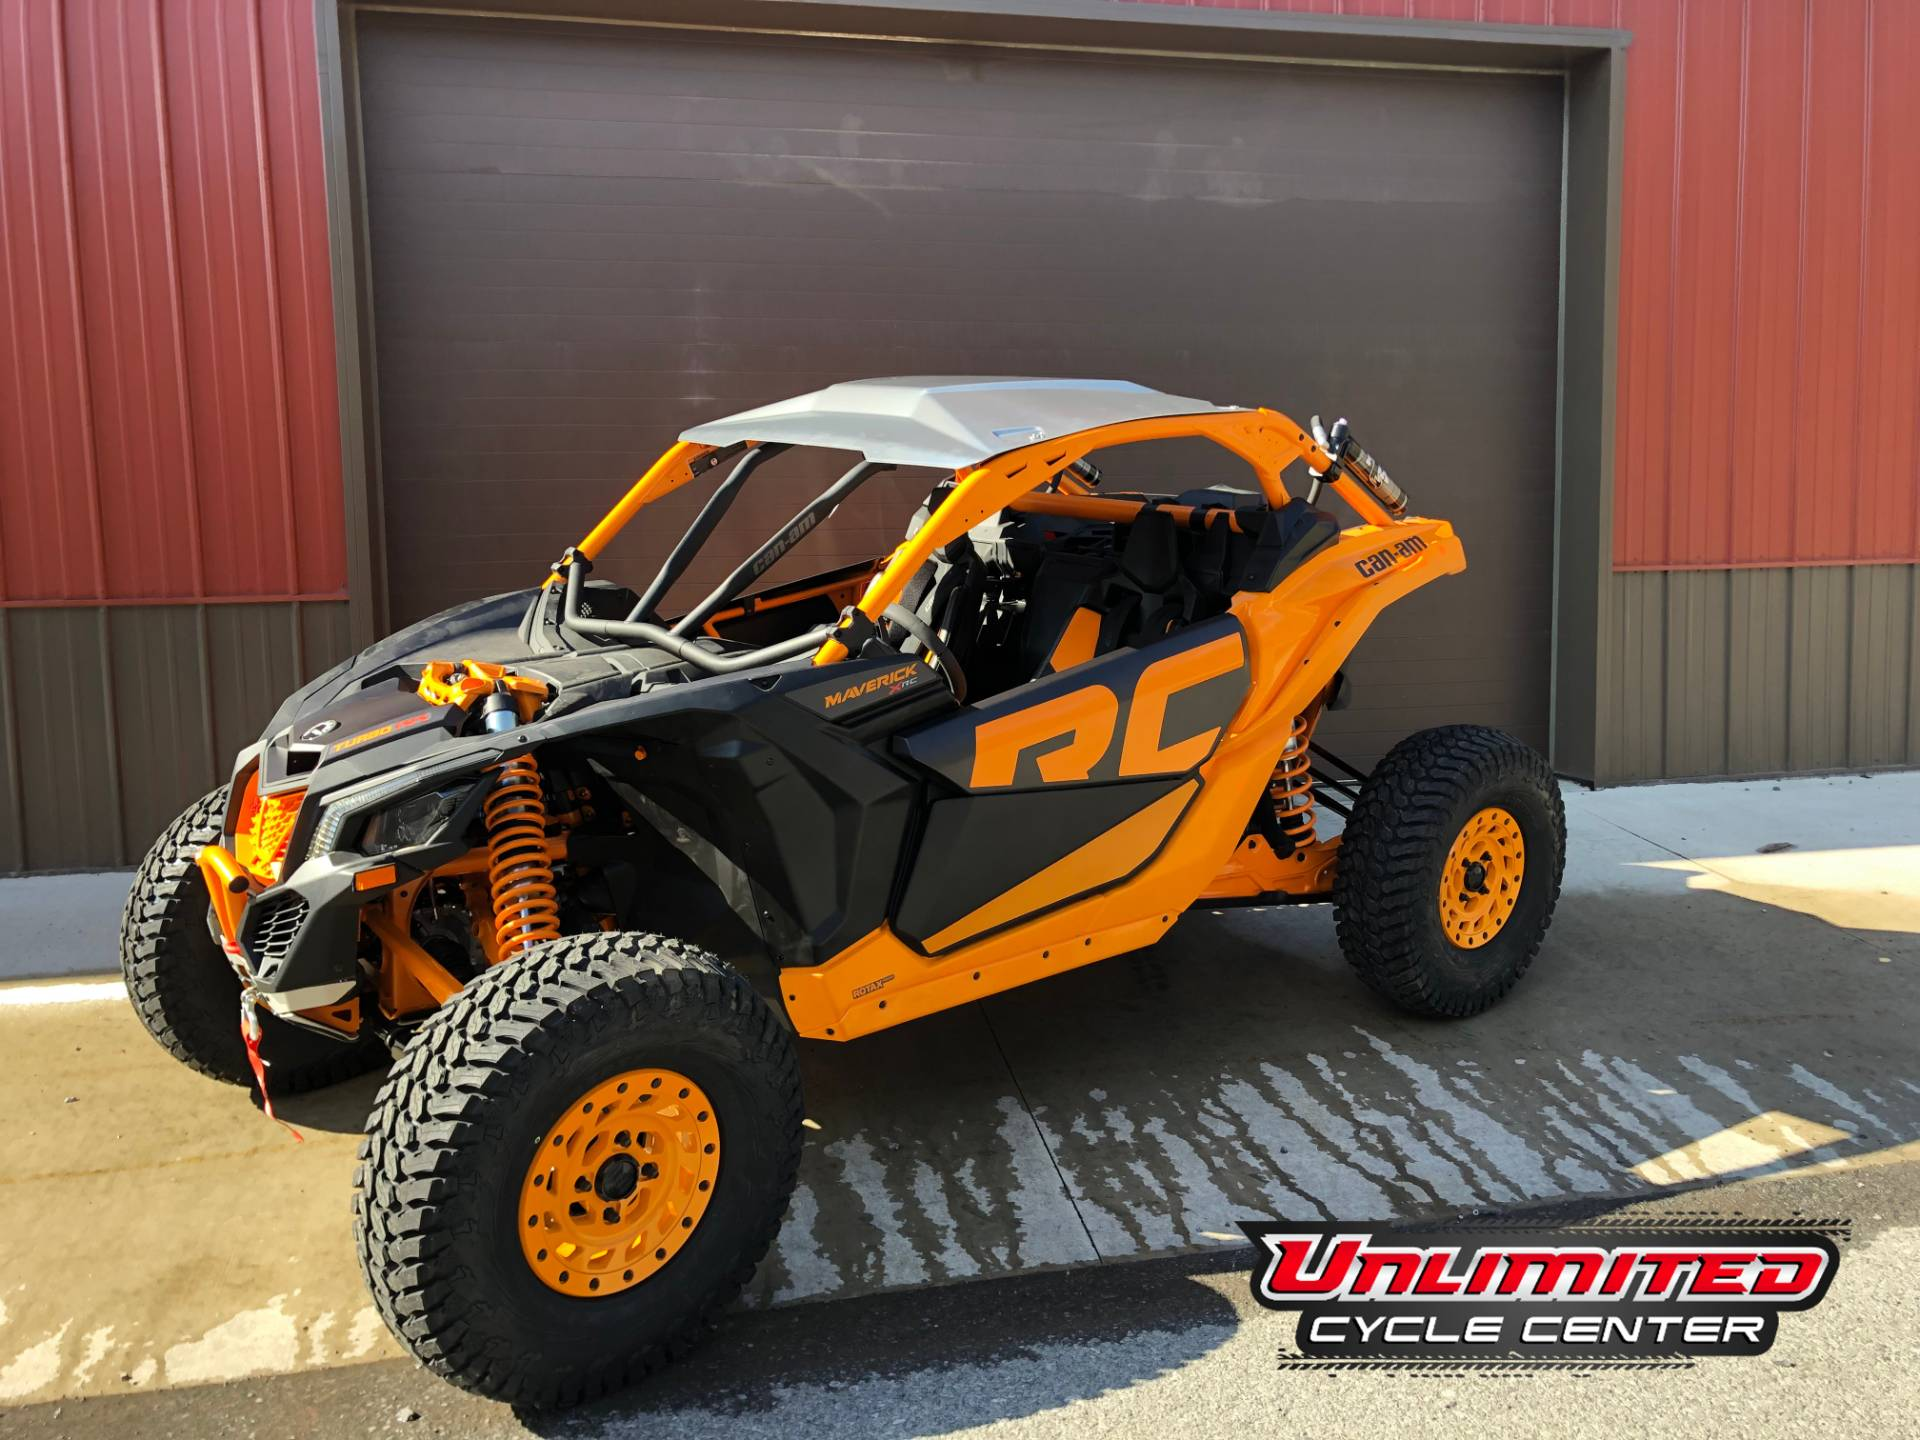 2020 Can-Am Maverick X3 X RC Turbo RR in Tyrone, Pennsylvania - Photo 1